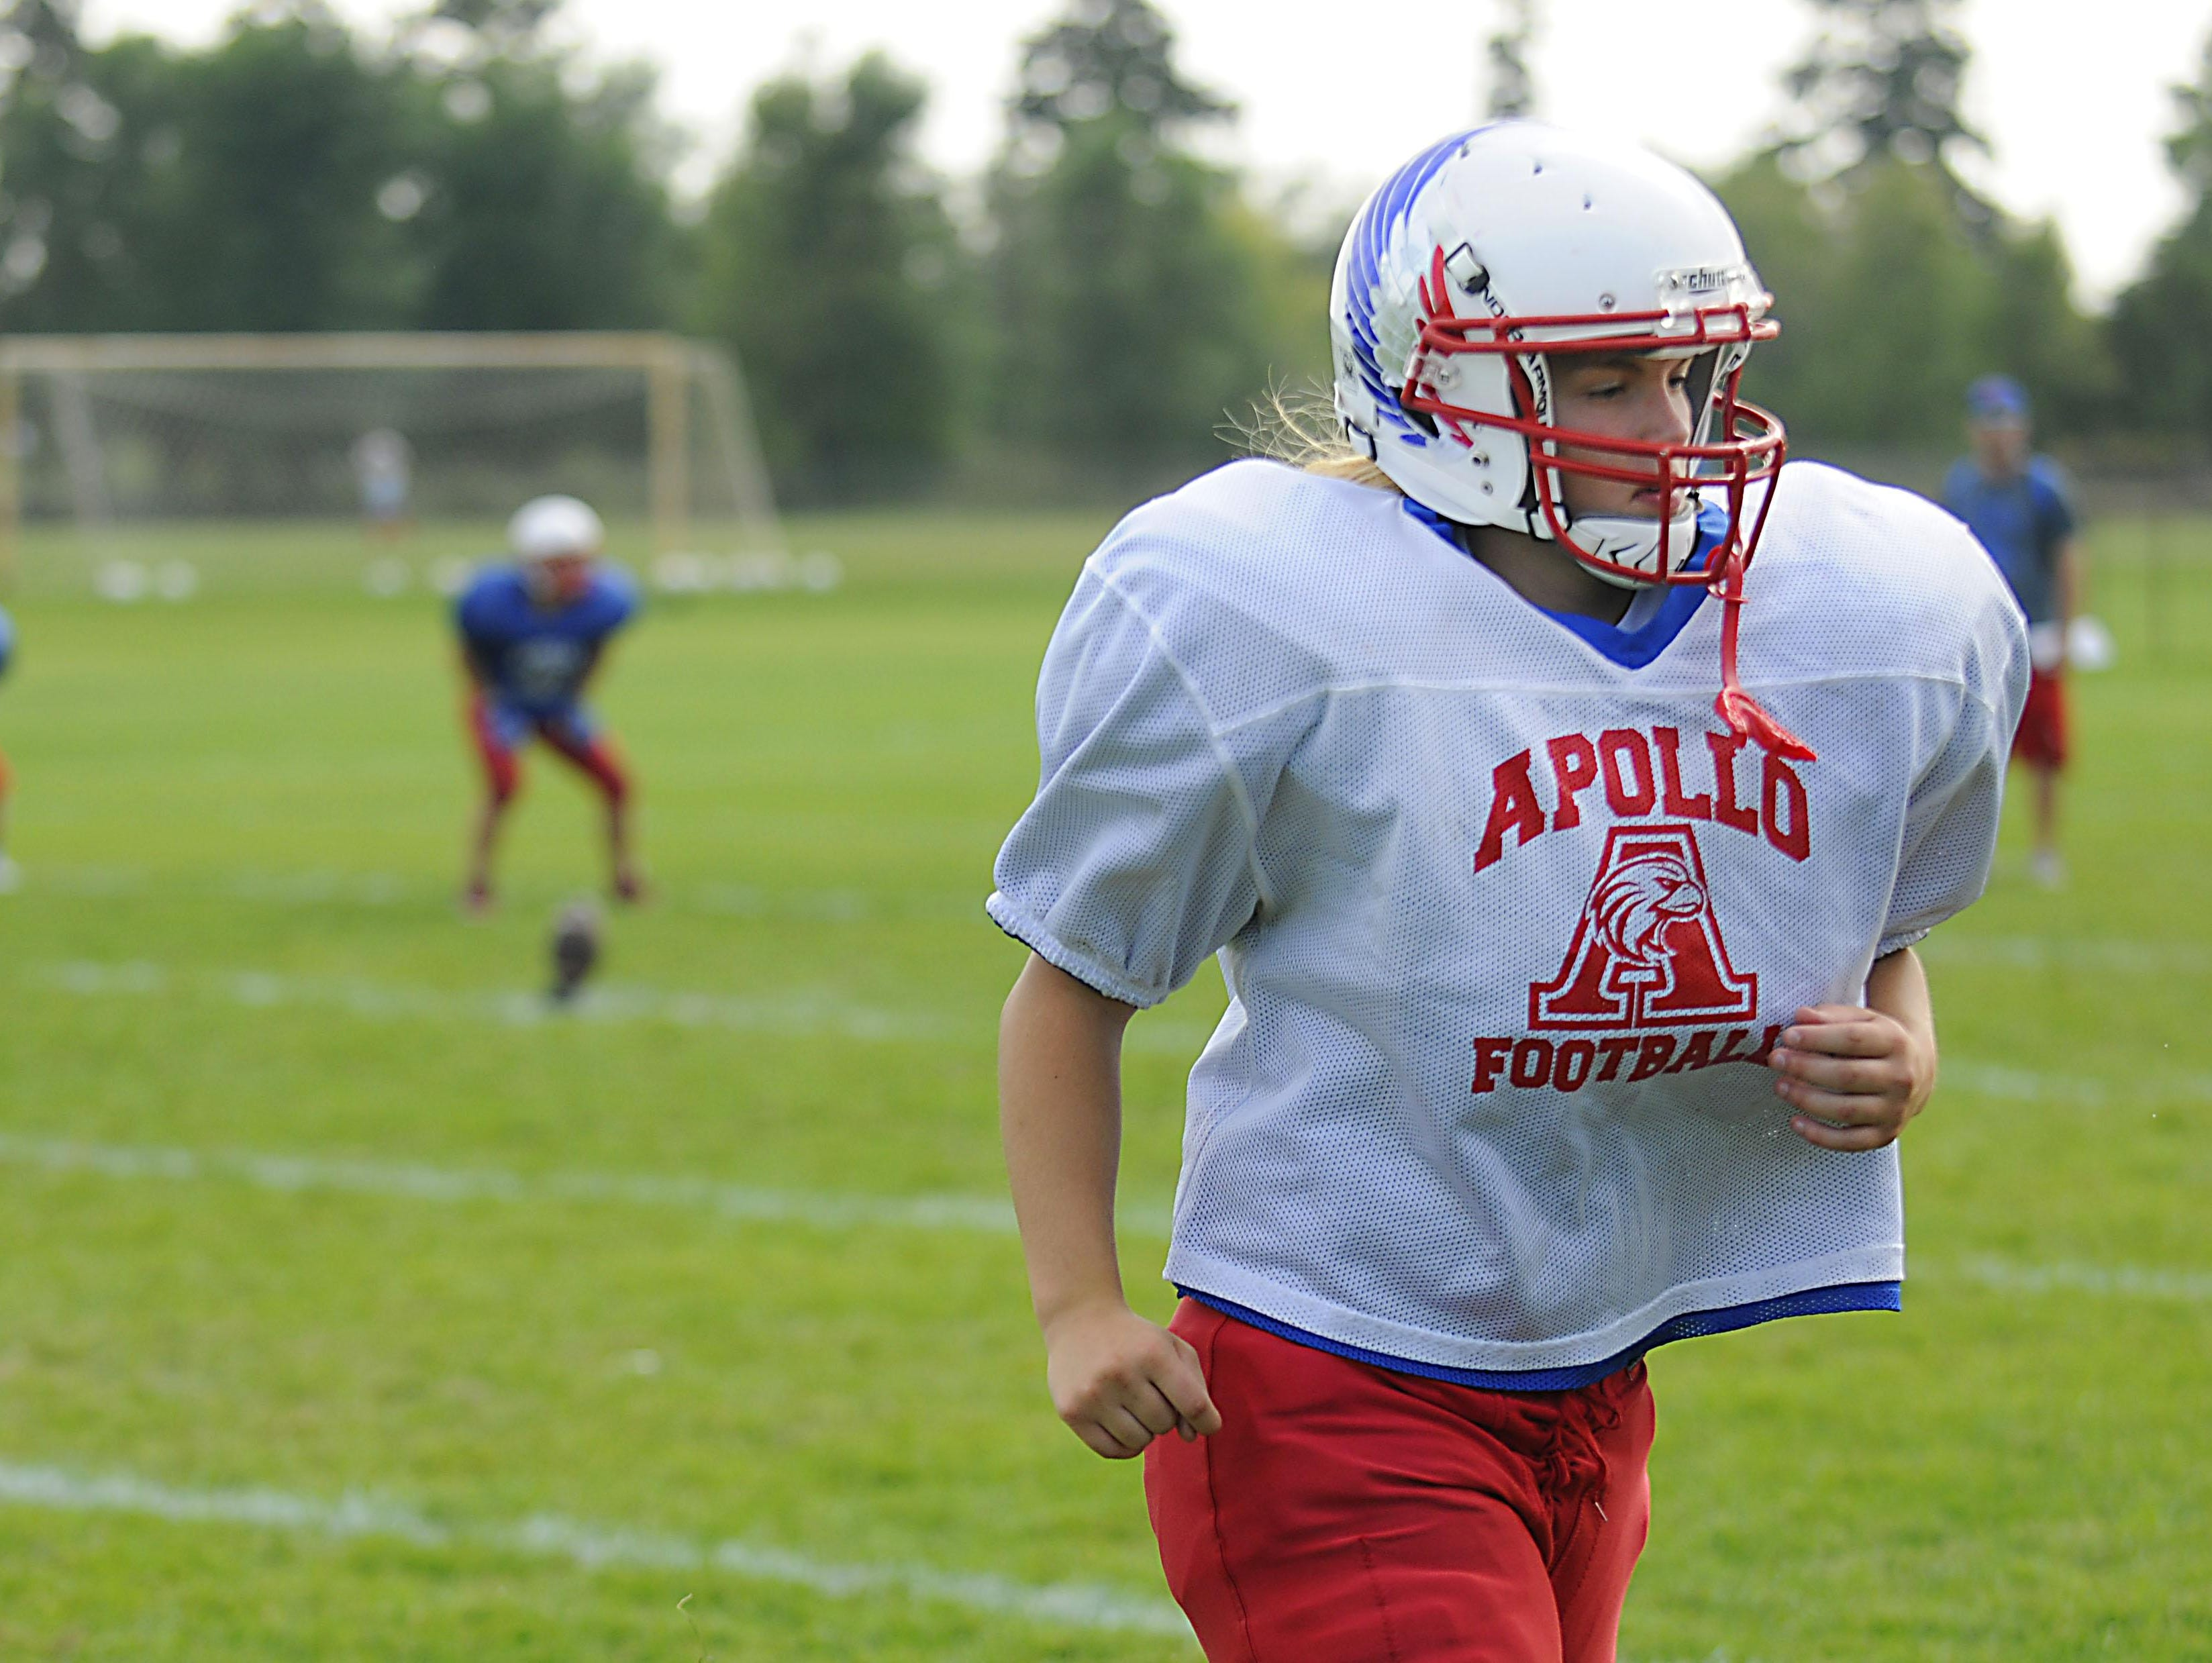 Linebacker Angie Stolt jogs off the field at practice on Wednesday at Apollo High School.